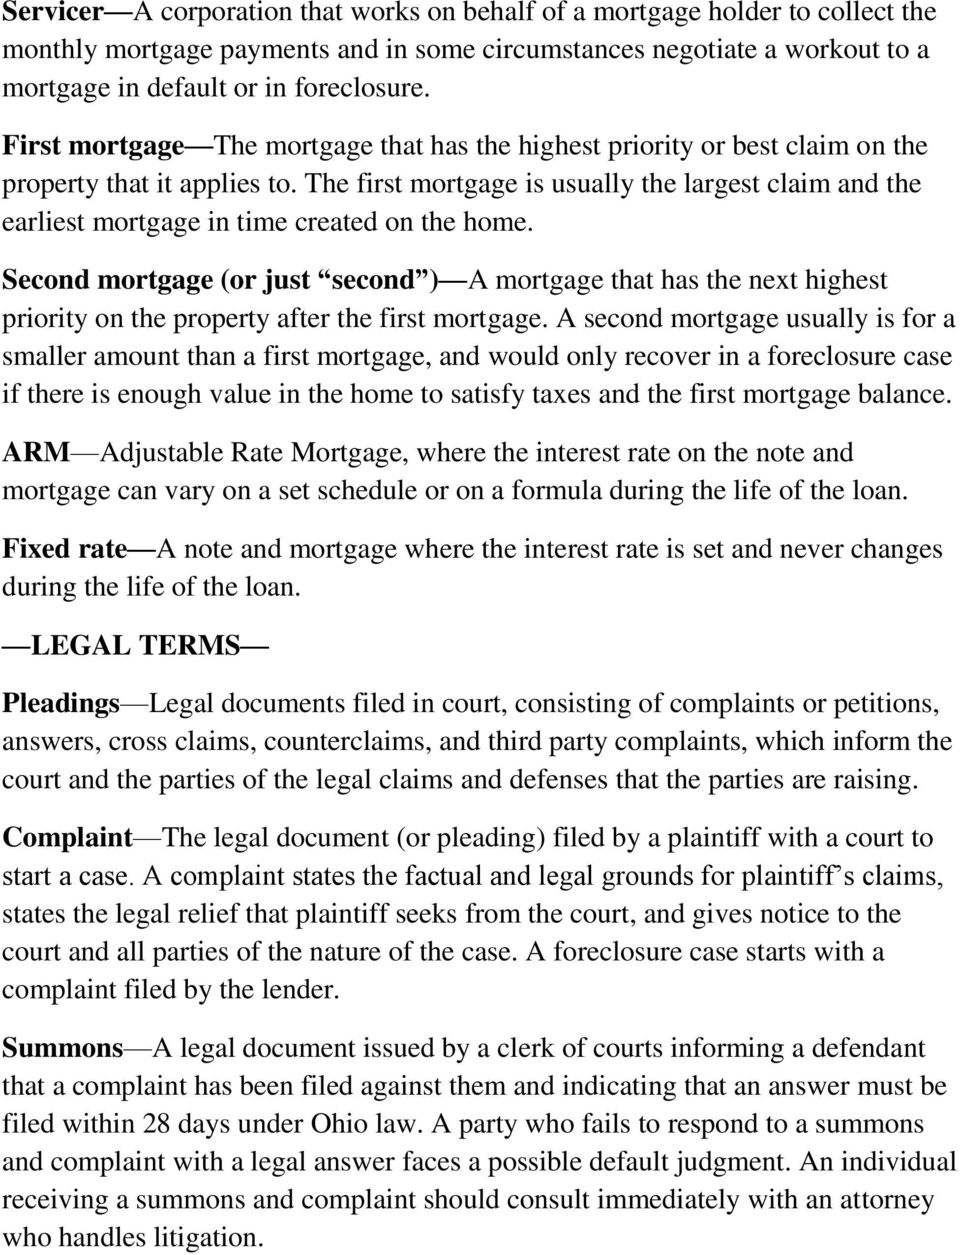 The first mortgage is usually the largest claim and the earliest mortgage in time created on the home.